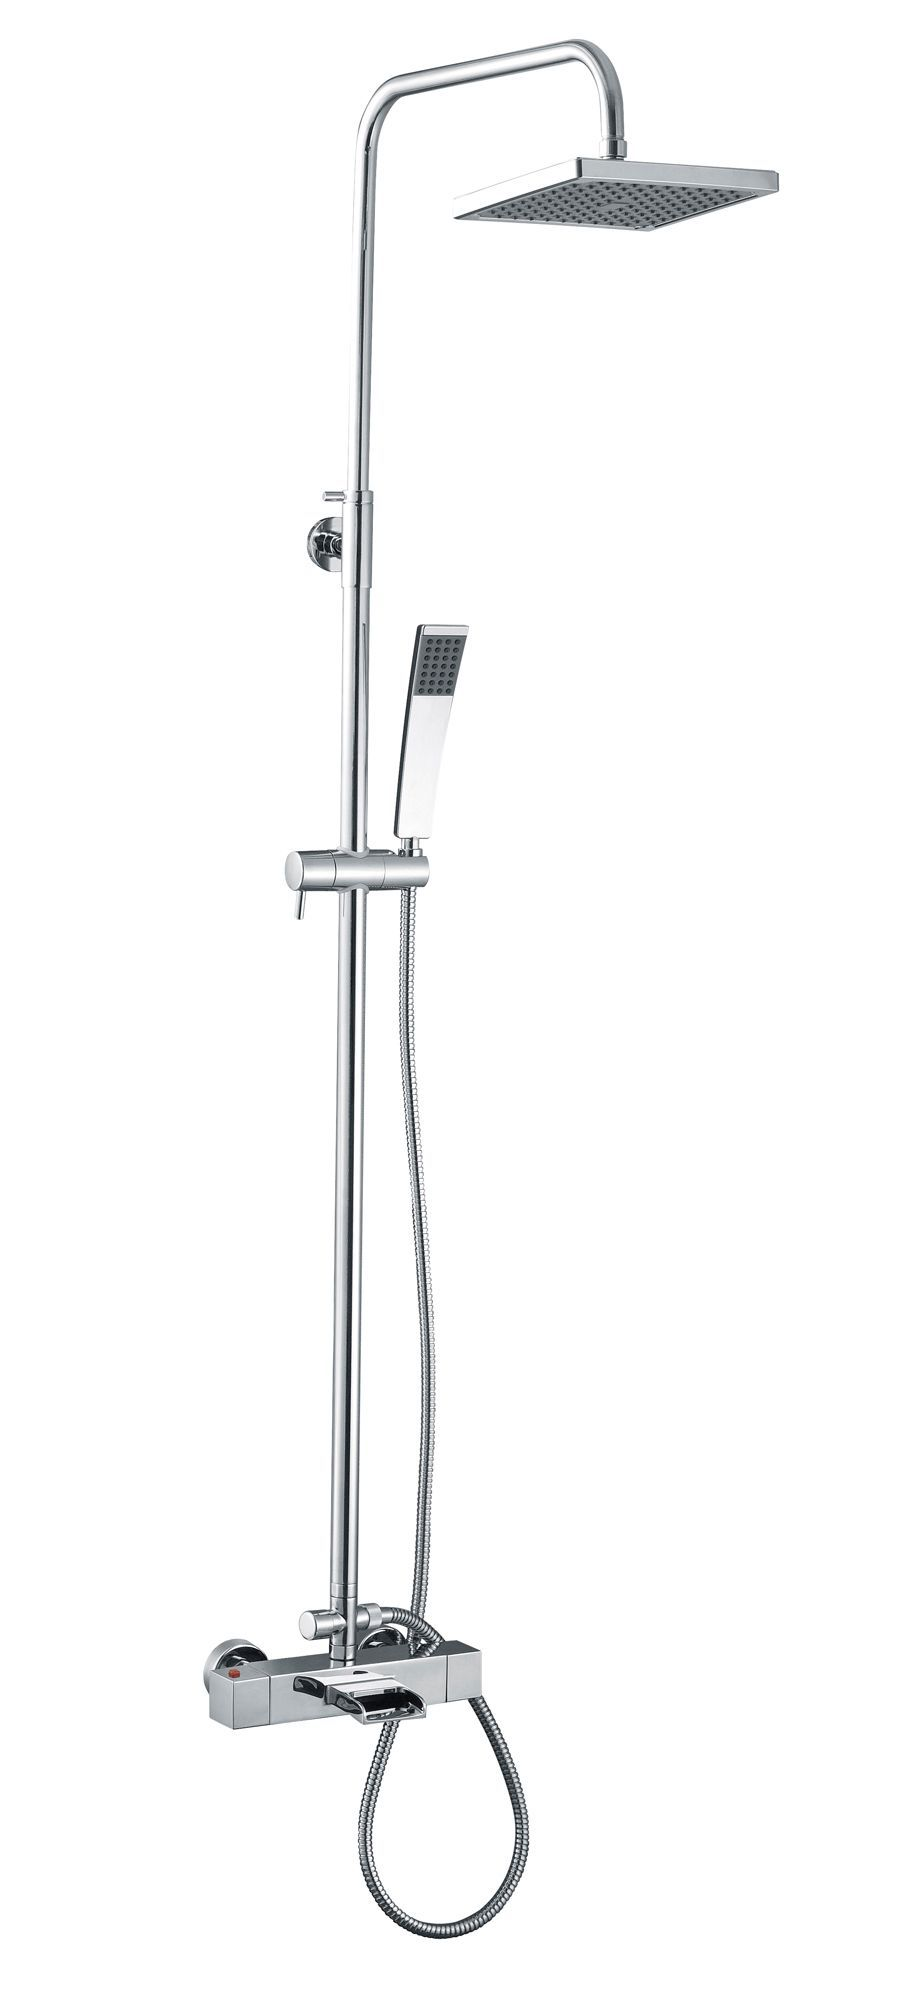 Cooke & Lewis Cascade Rear fed Chrome 3-in-1 mixer shower